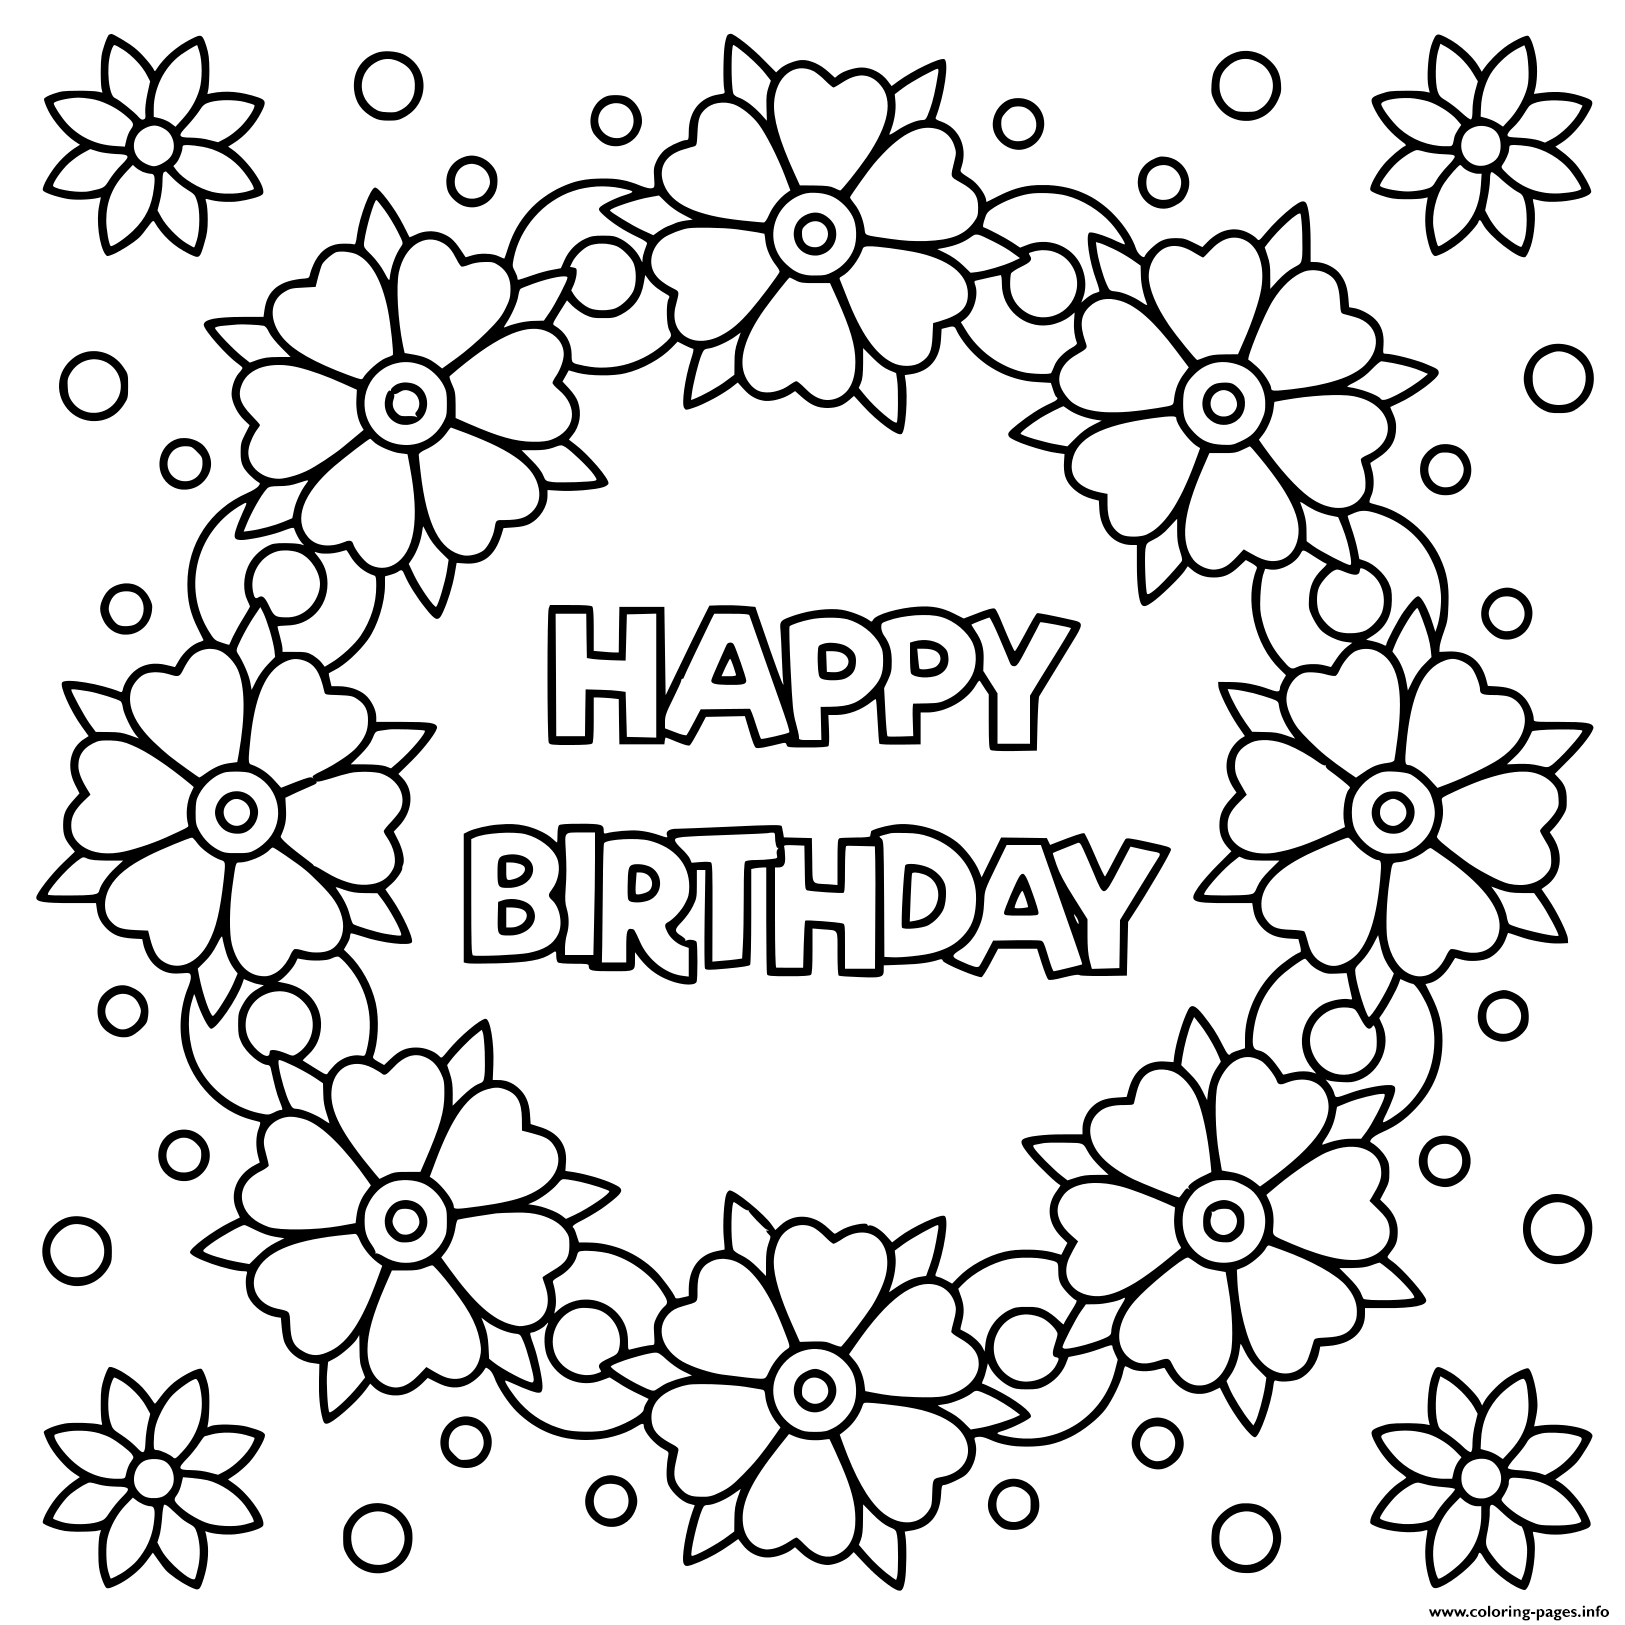 Floral Wreath For Happy Birthday Coloring Pages Printable